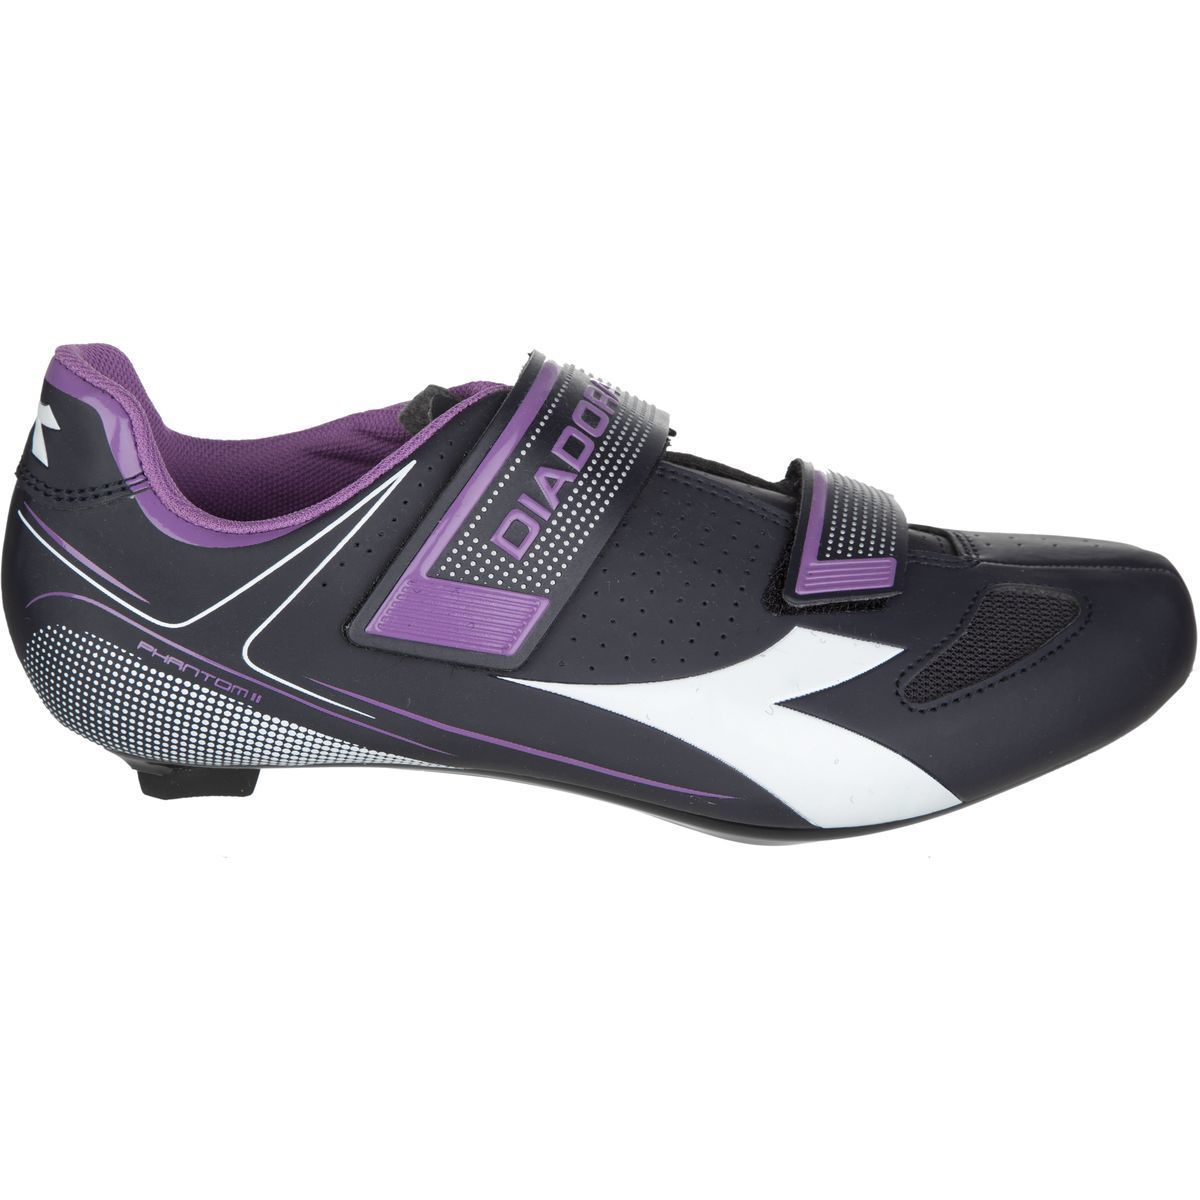 Spin Cycling Shoes Sale